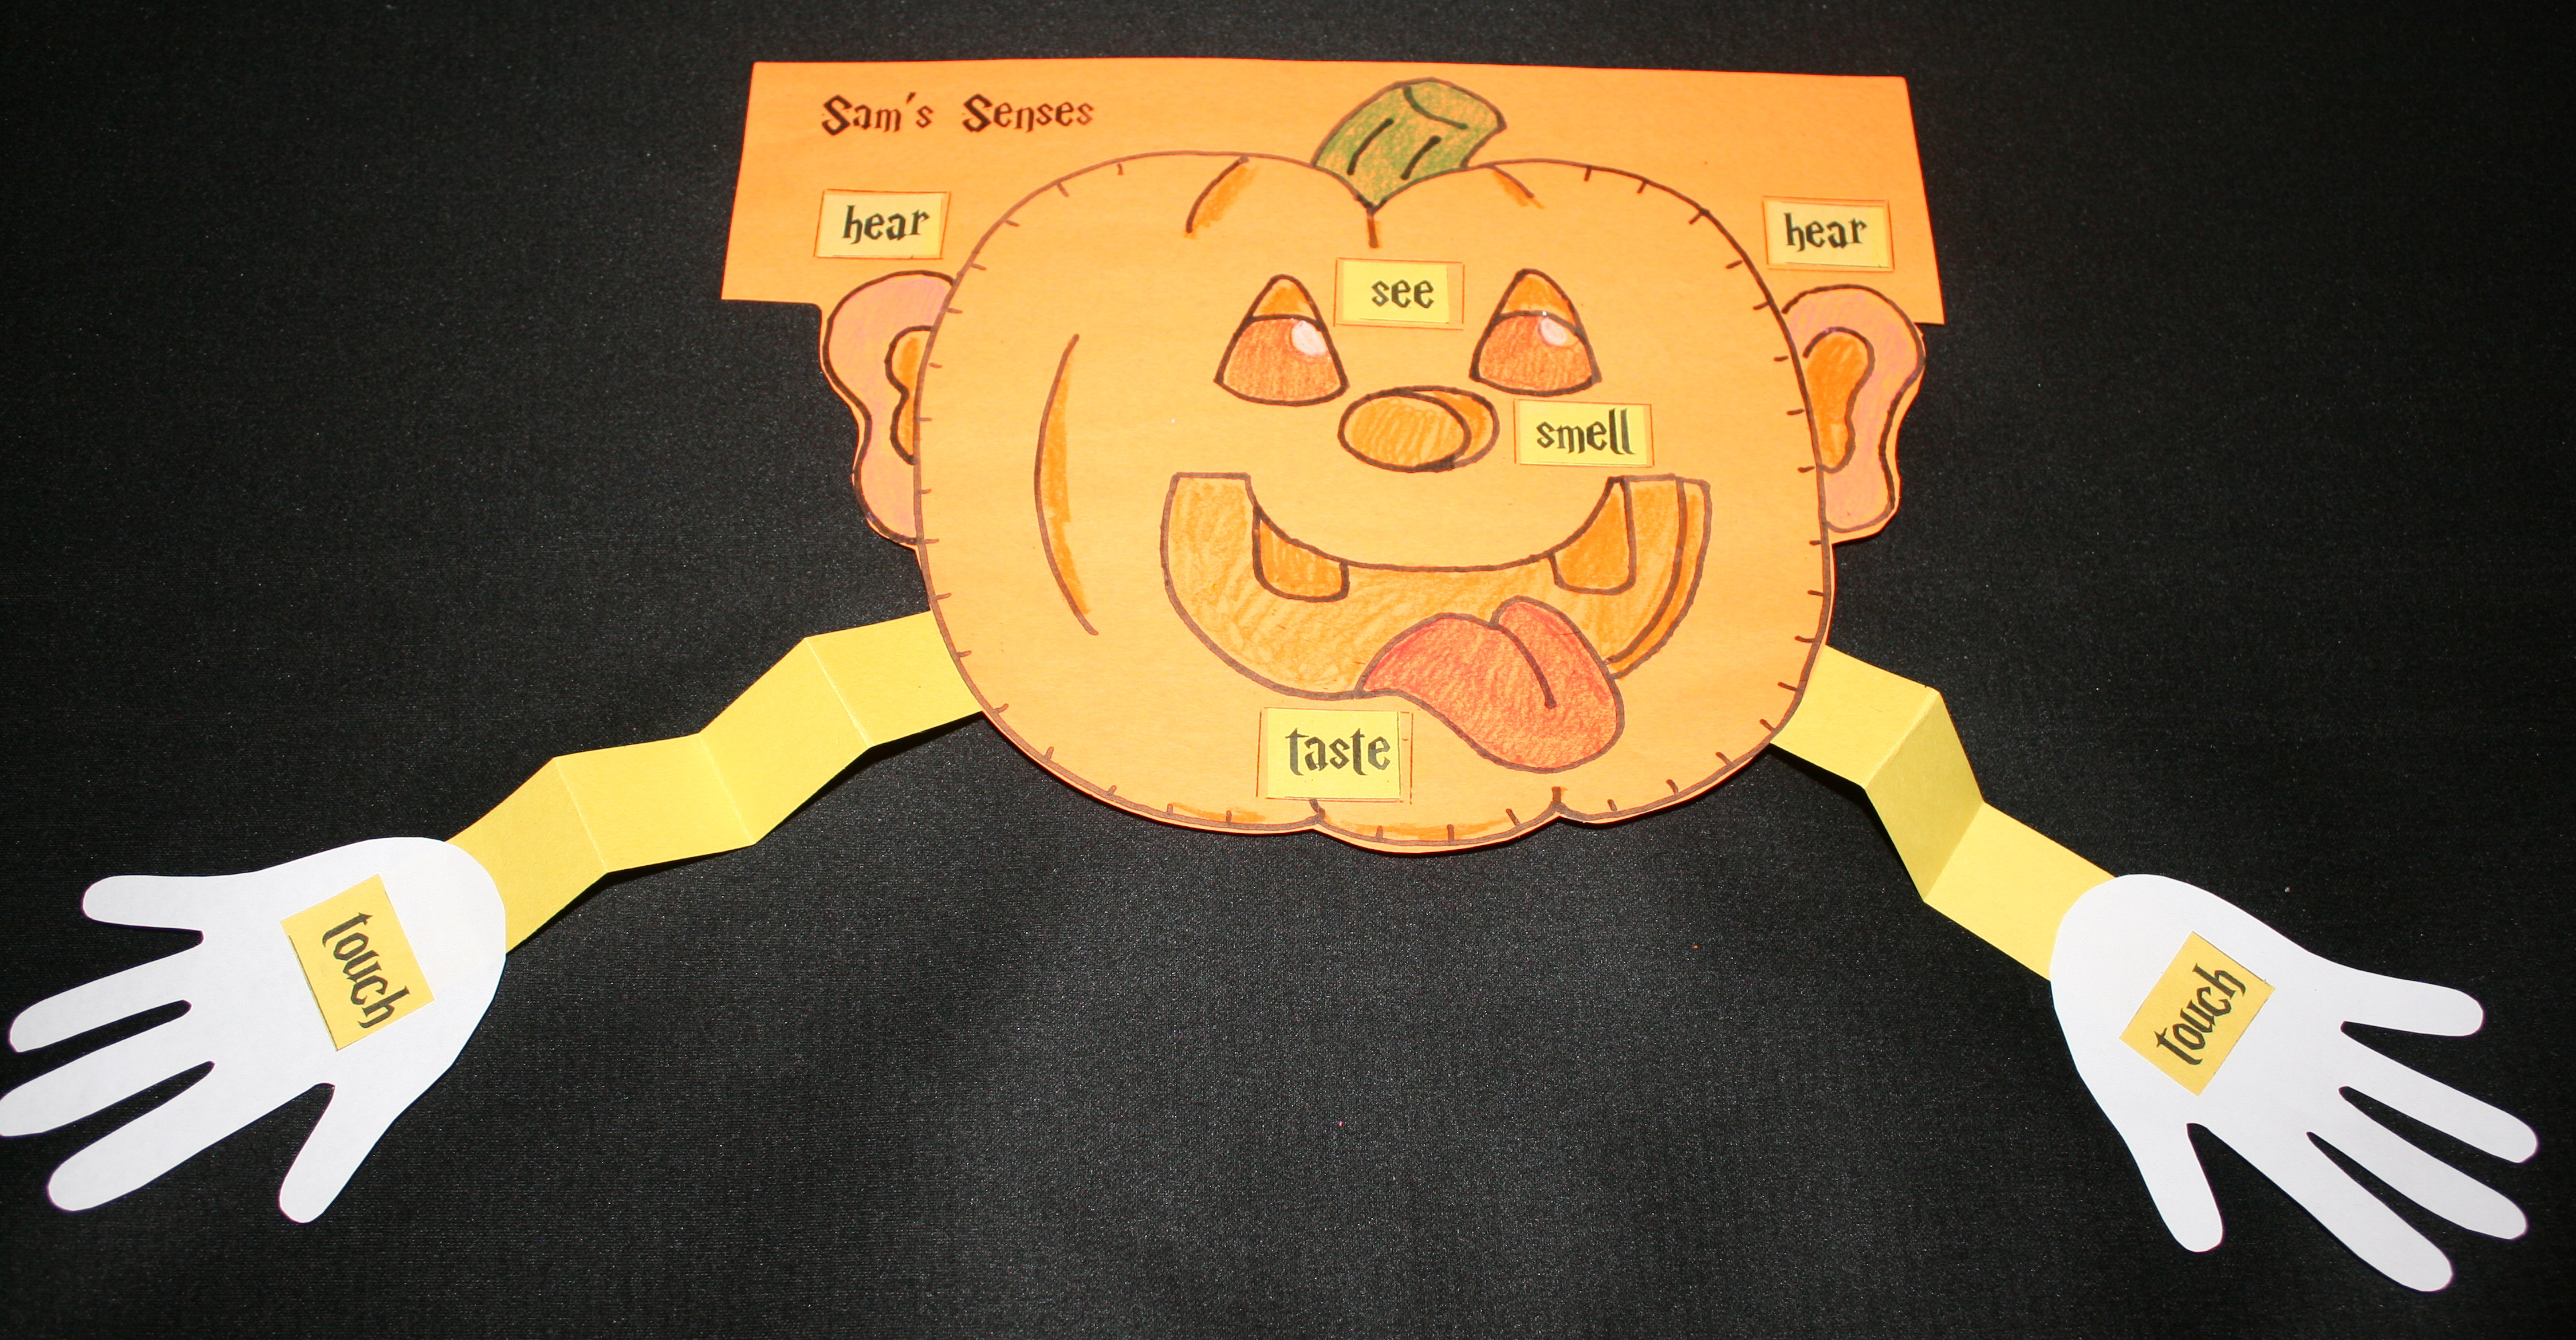 pumpkin activities, writing prompts for October, writing prompts for fall, adjective activities, common core pumpkins, common core apples, common core bats, common core spiders, spider activities, bat activities, apple activities, back to school writing prompts, sunflower activities, turkey activities, turkey writing prompts, writing prompts for november, Pilgrim writing prompts, pilgrim activities, adjective poster, free adjective anchor chart